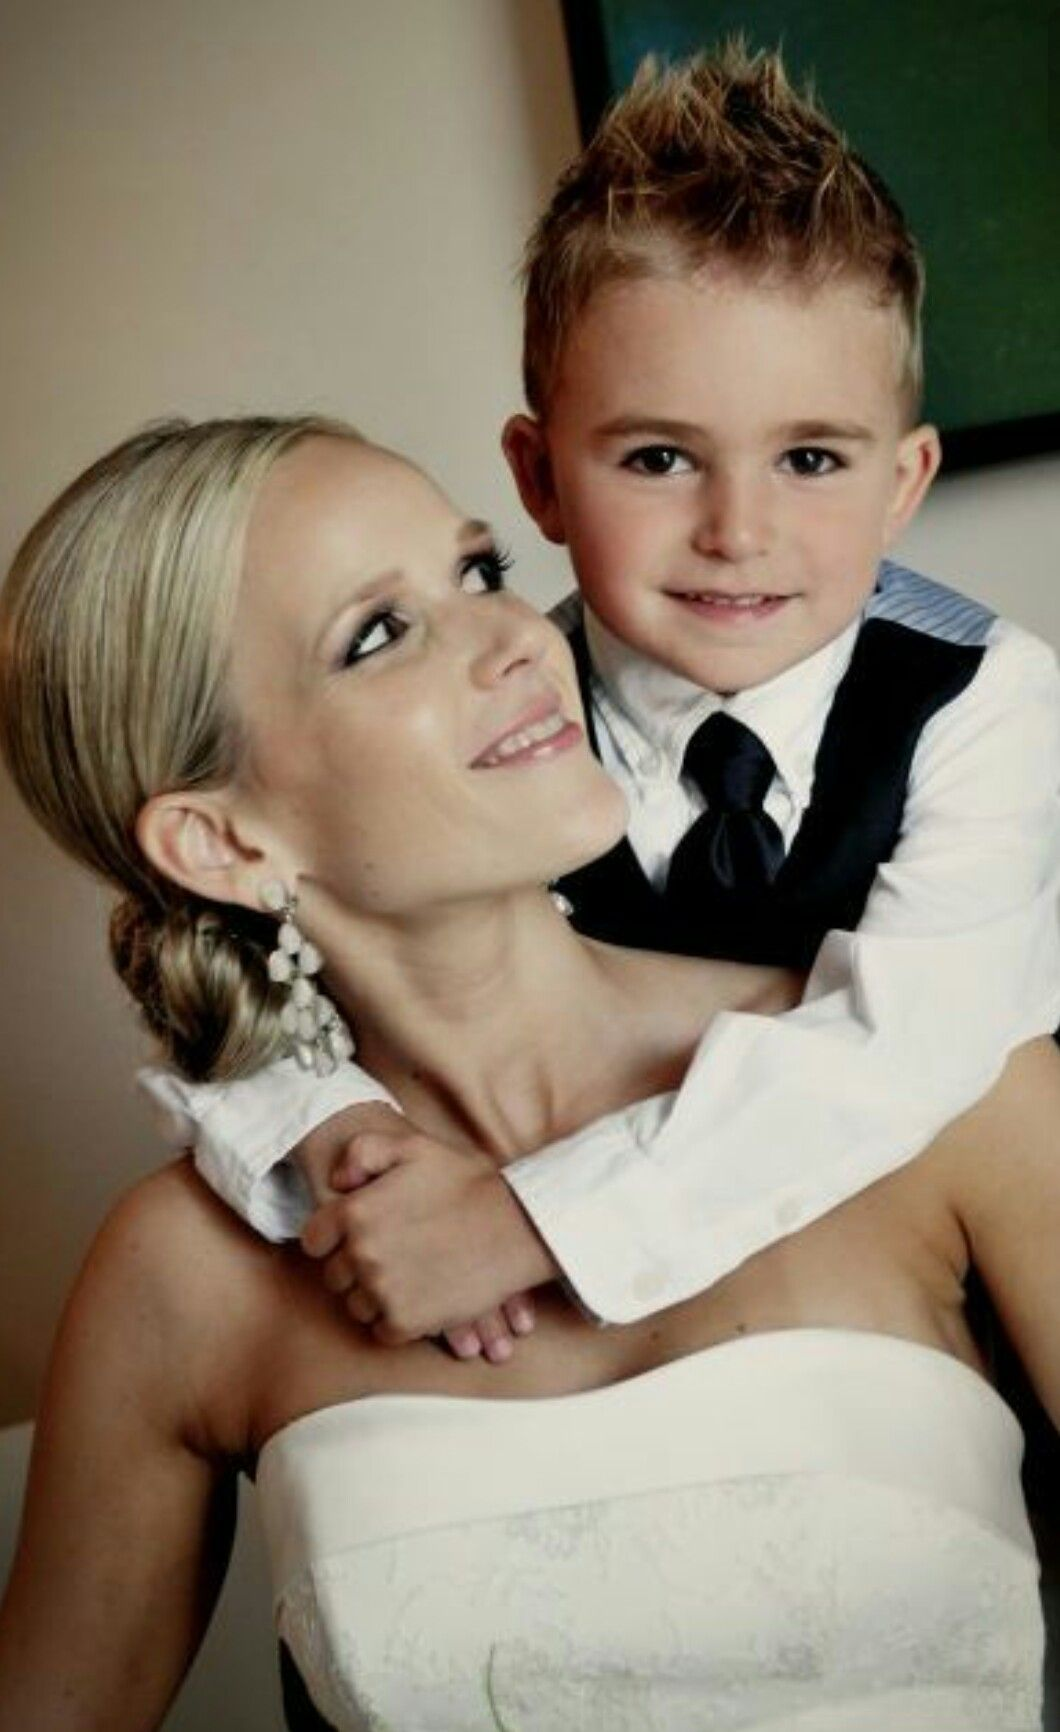 Pin by Nicole Rossi on Weddings Wedding photos poses